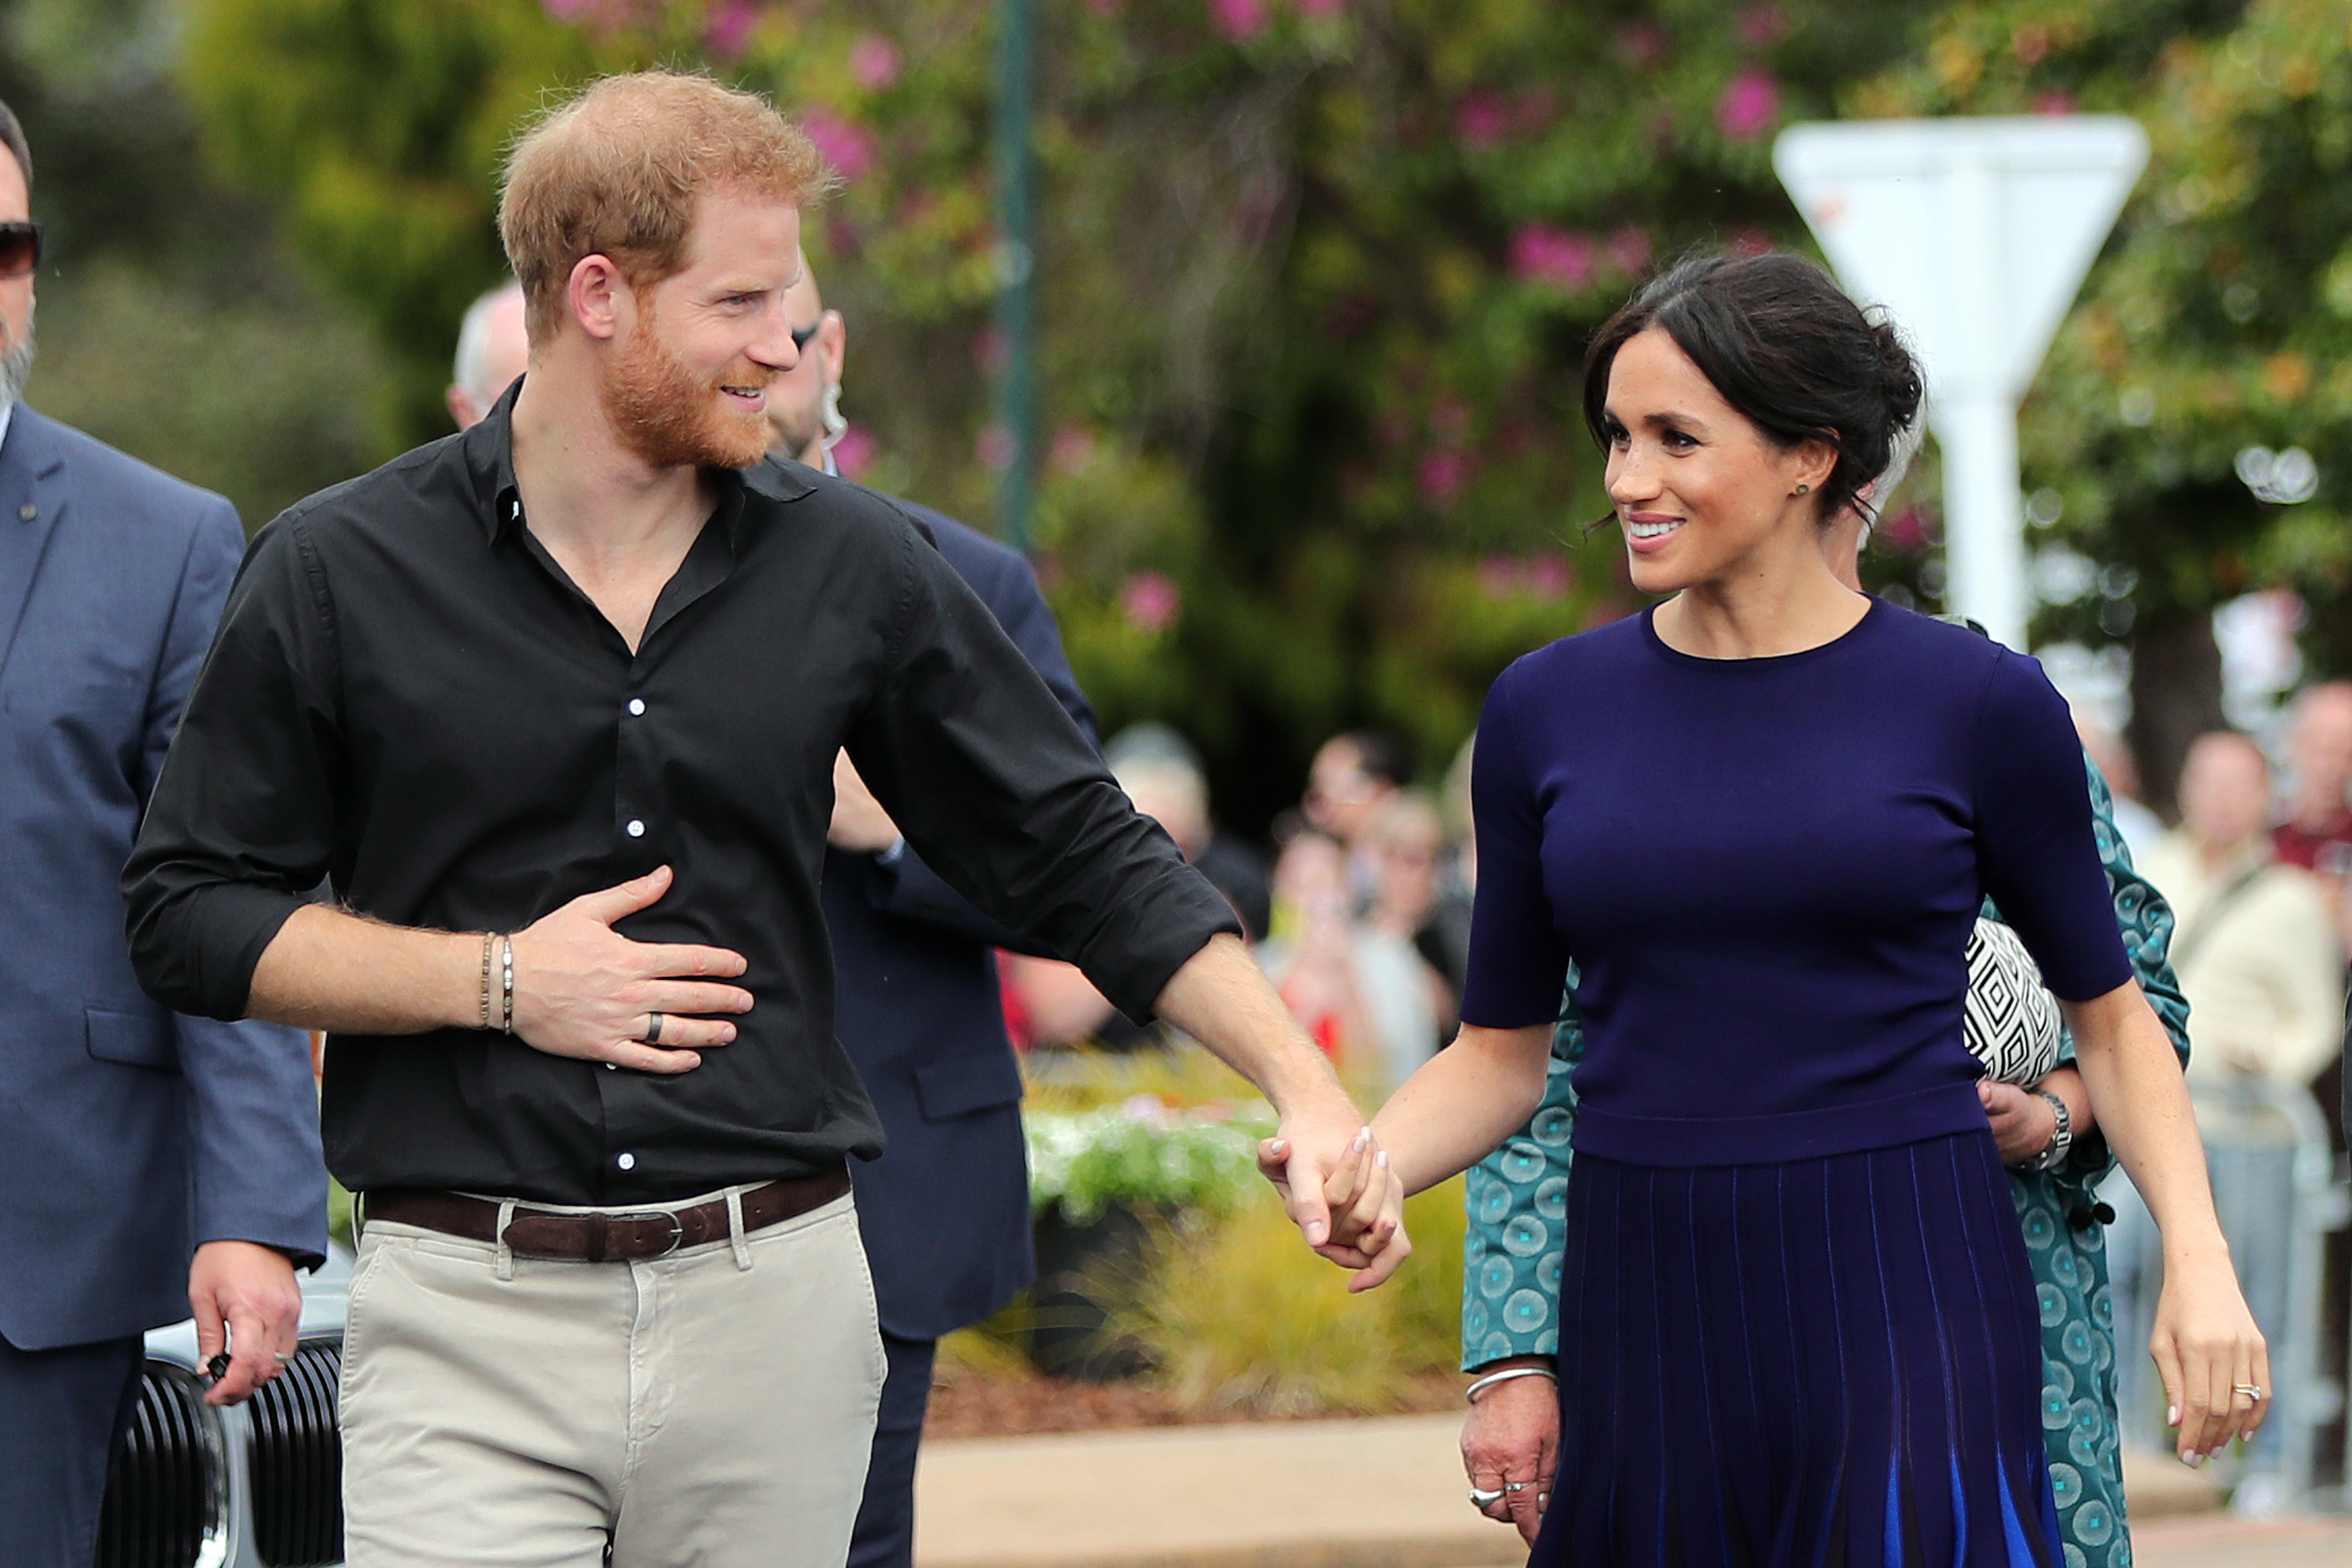 Harry and Meghan hold hands while on a walk